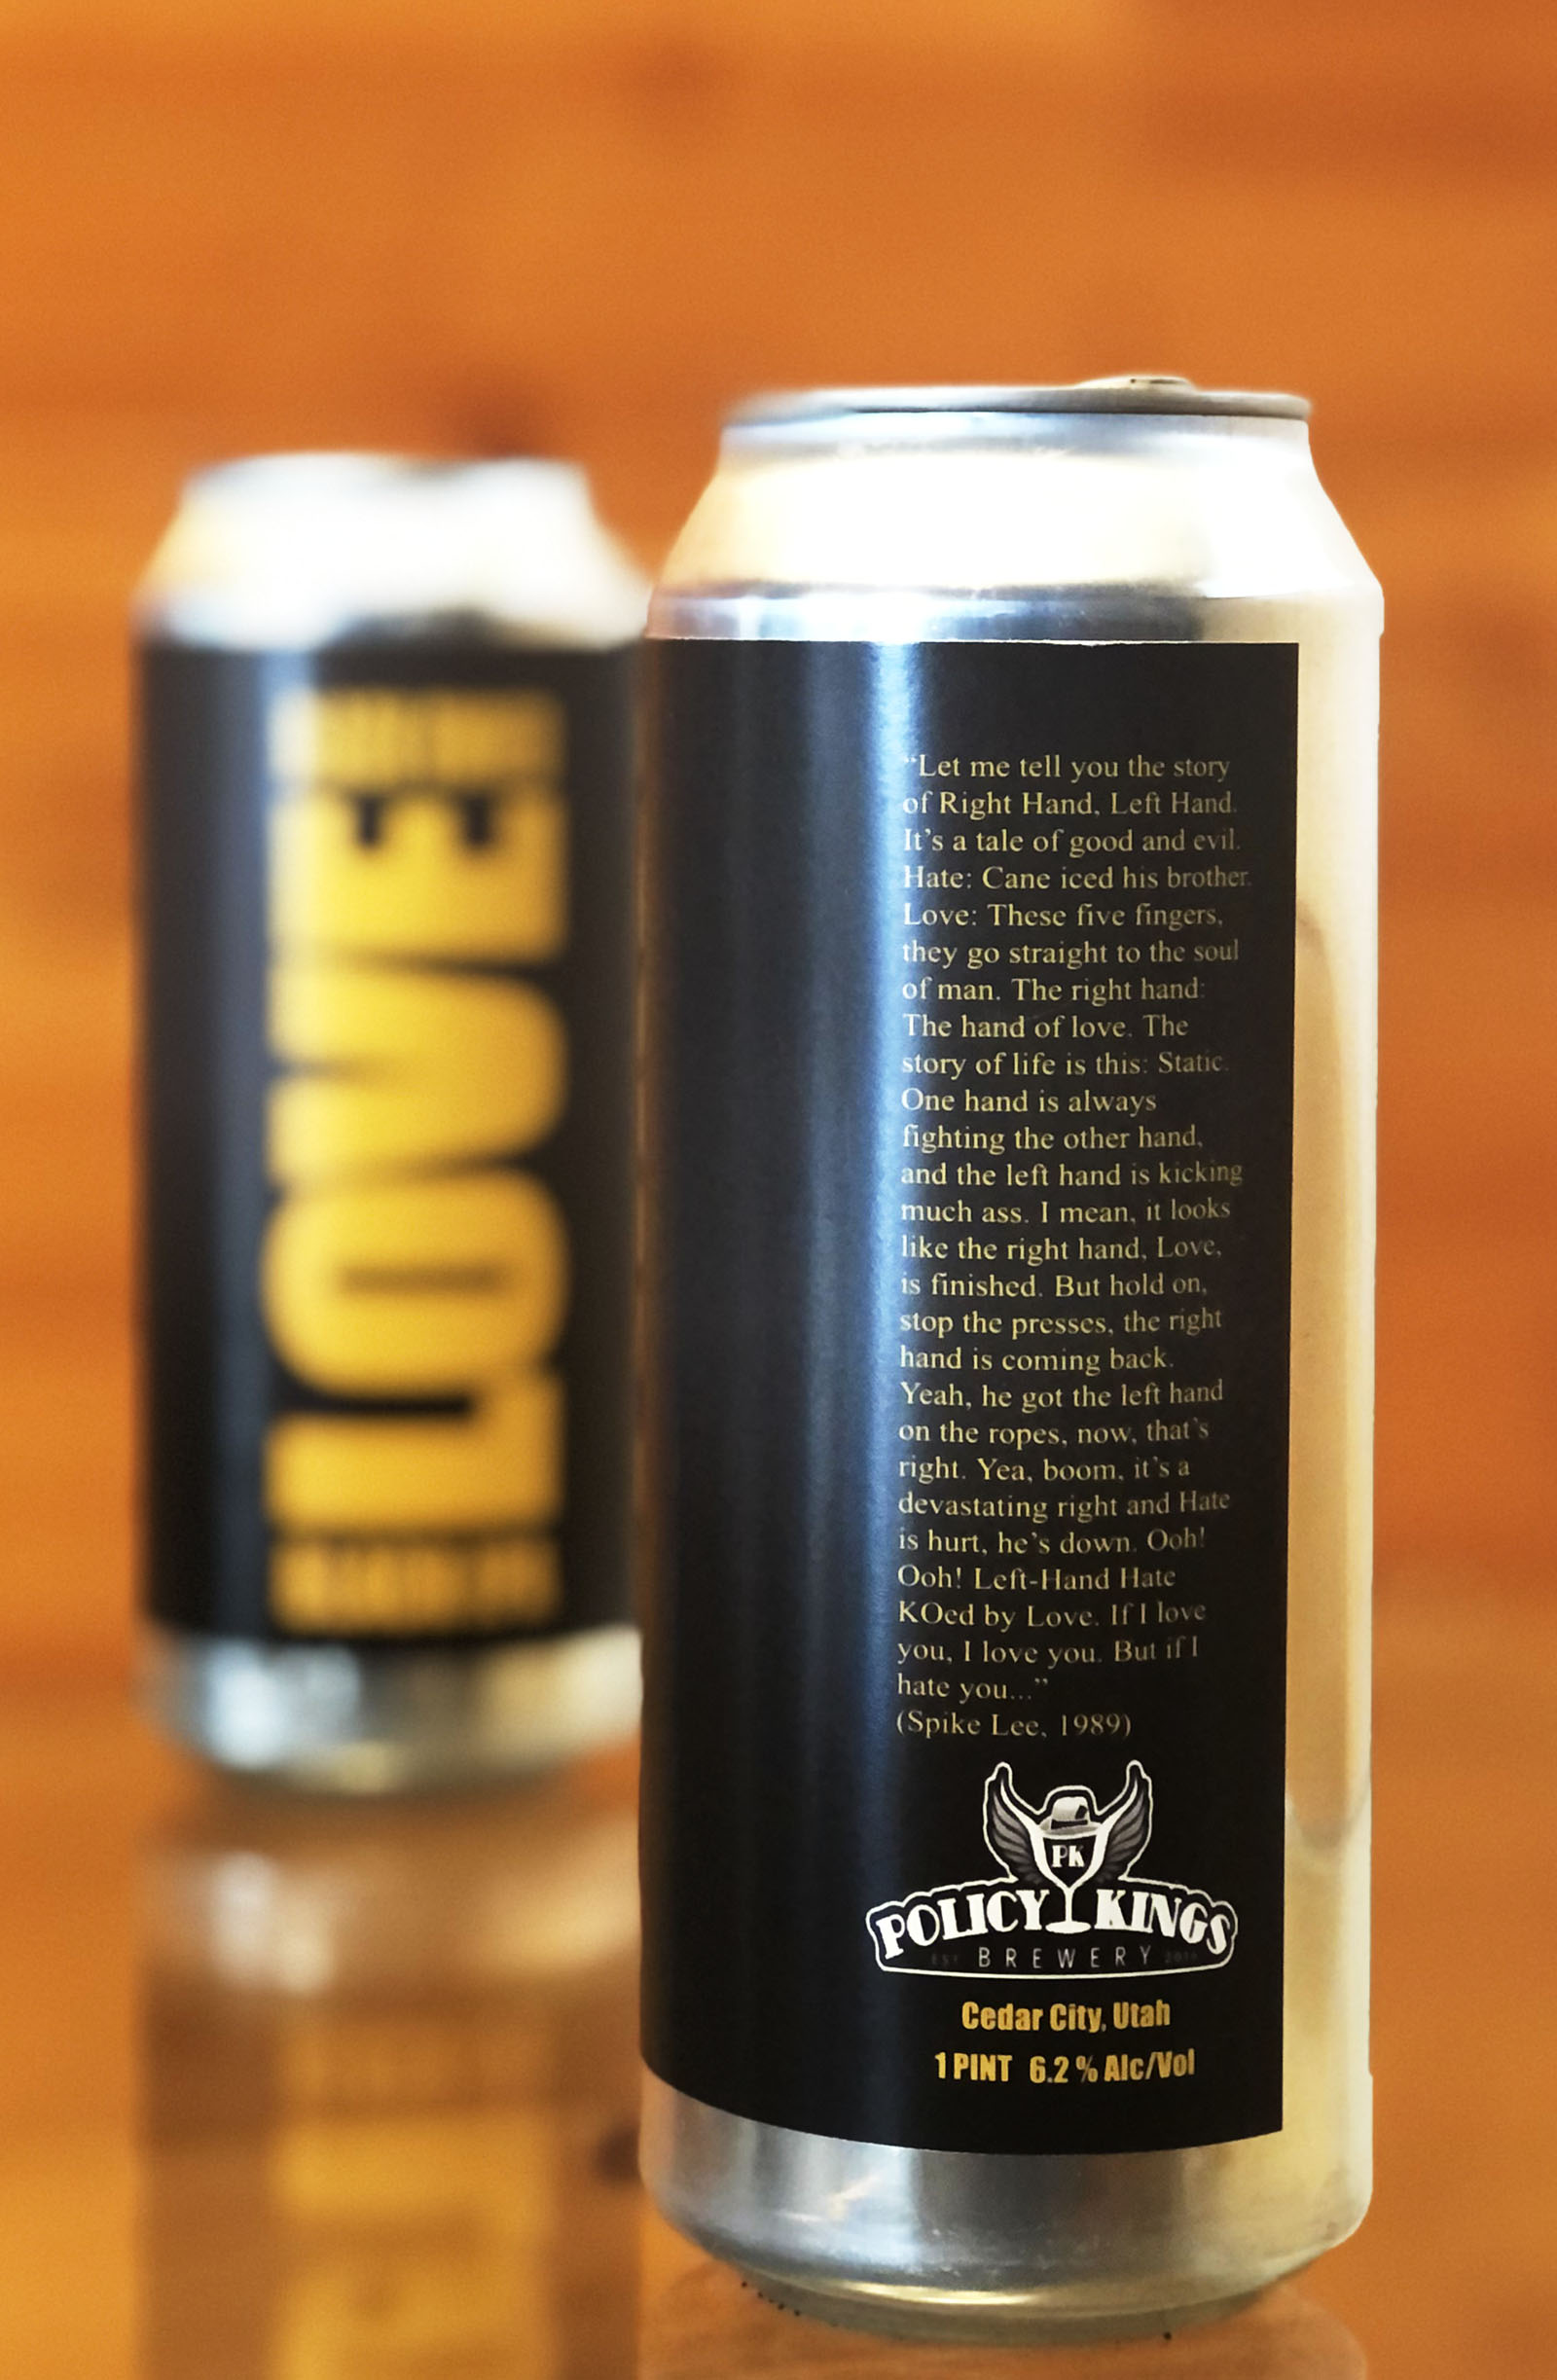 Each can of Love Black IPA and Hate Hazy IPA includes the full text of a monologue recited by the character Radio Raheem in Spike Lee's classic film, Do the Right Thing.